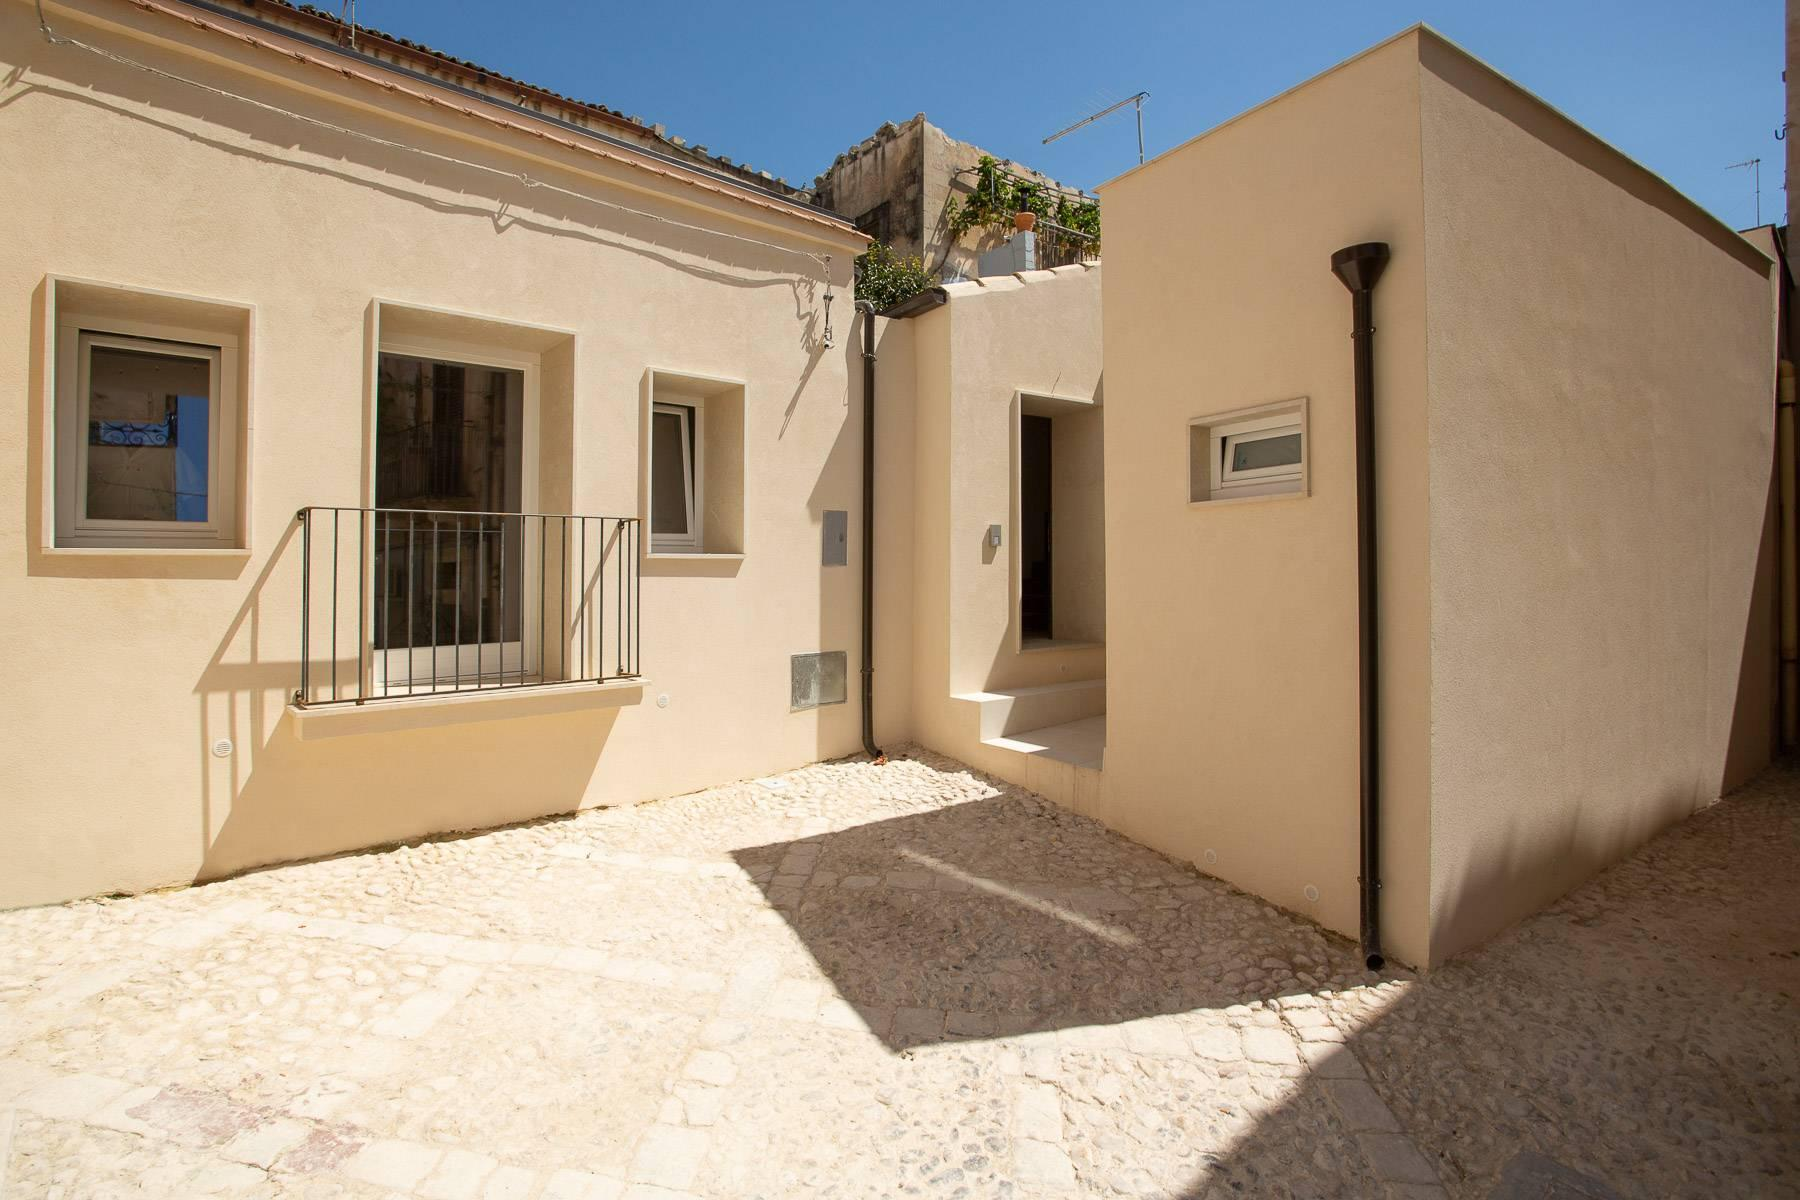 Modern single house in the old district of Santa Caterina in Noto - 2